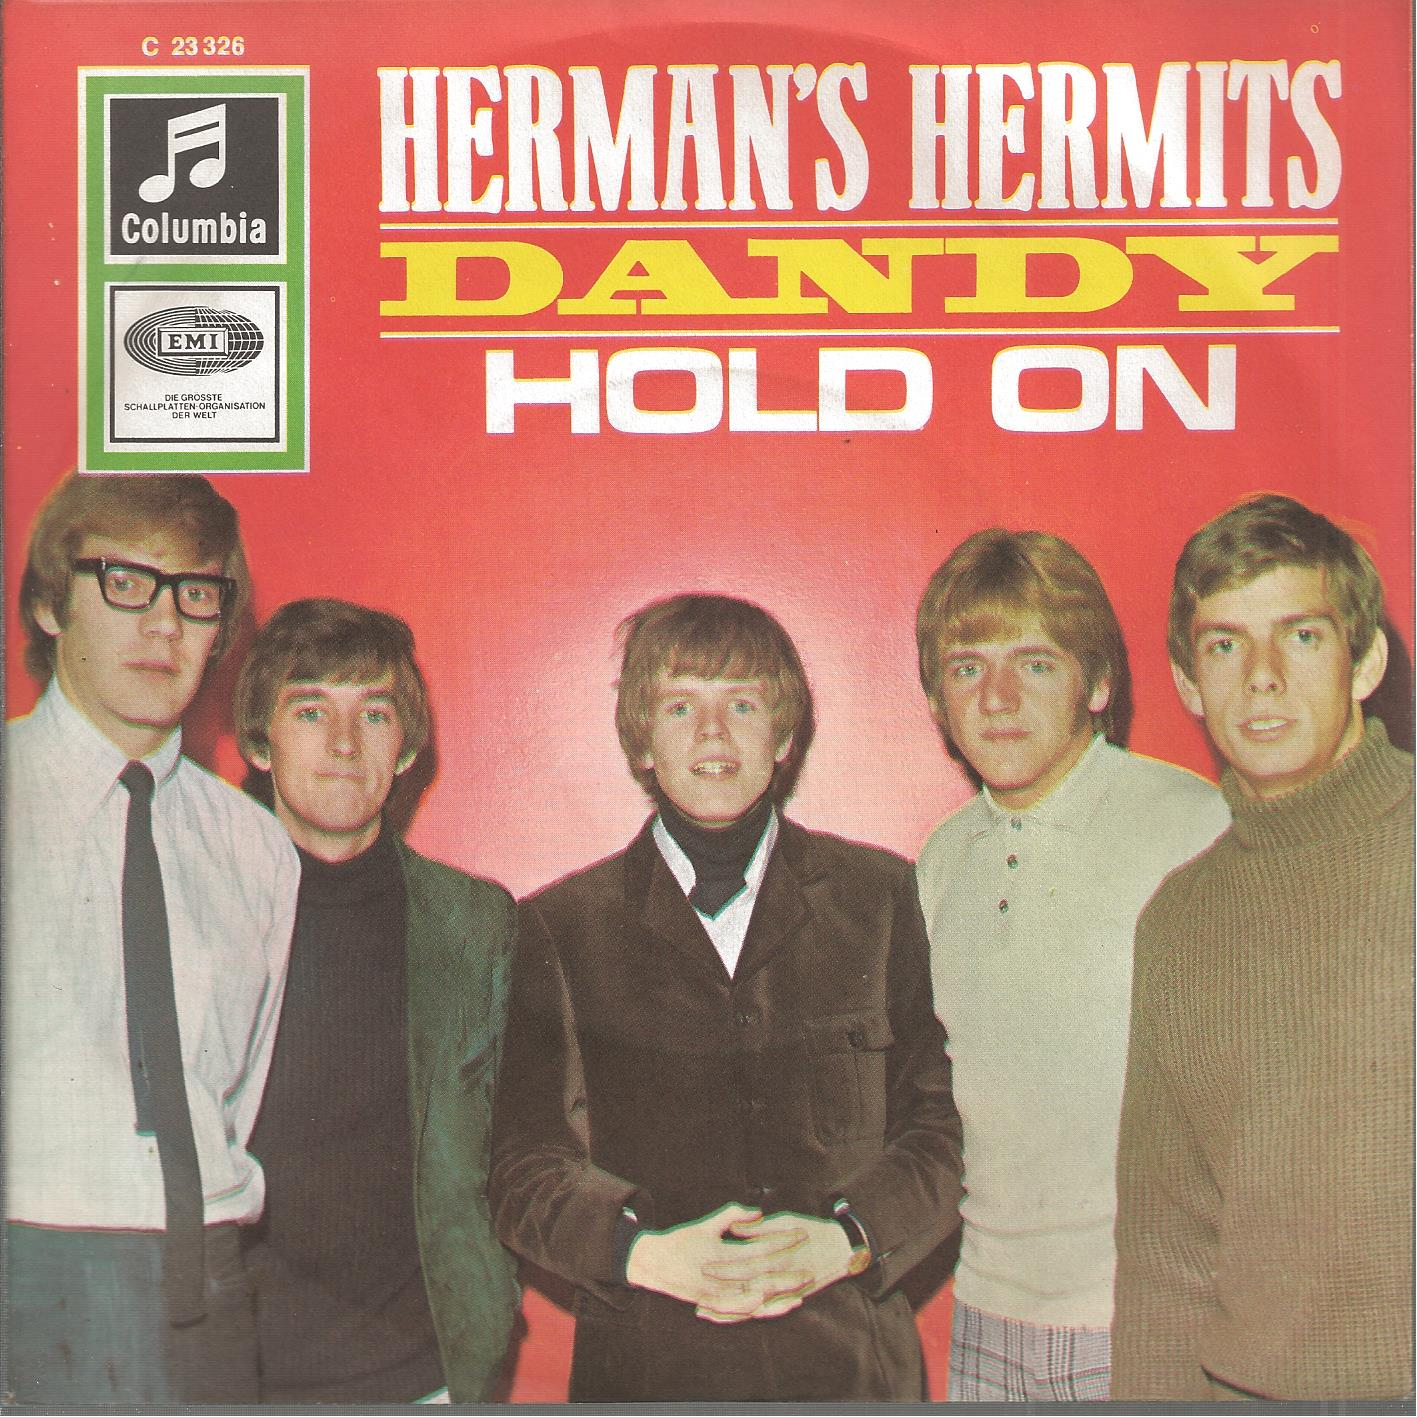 Dandy / Hold on